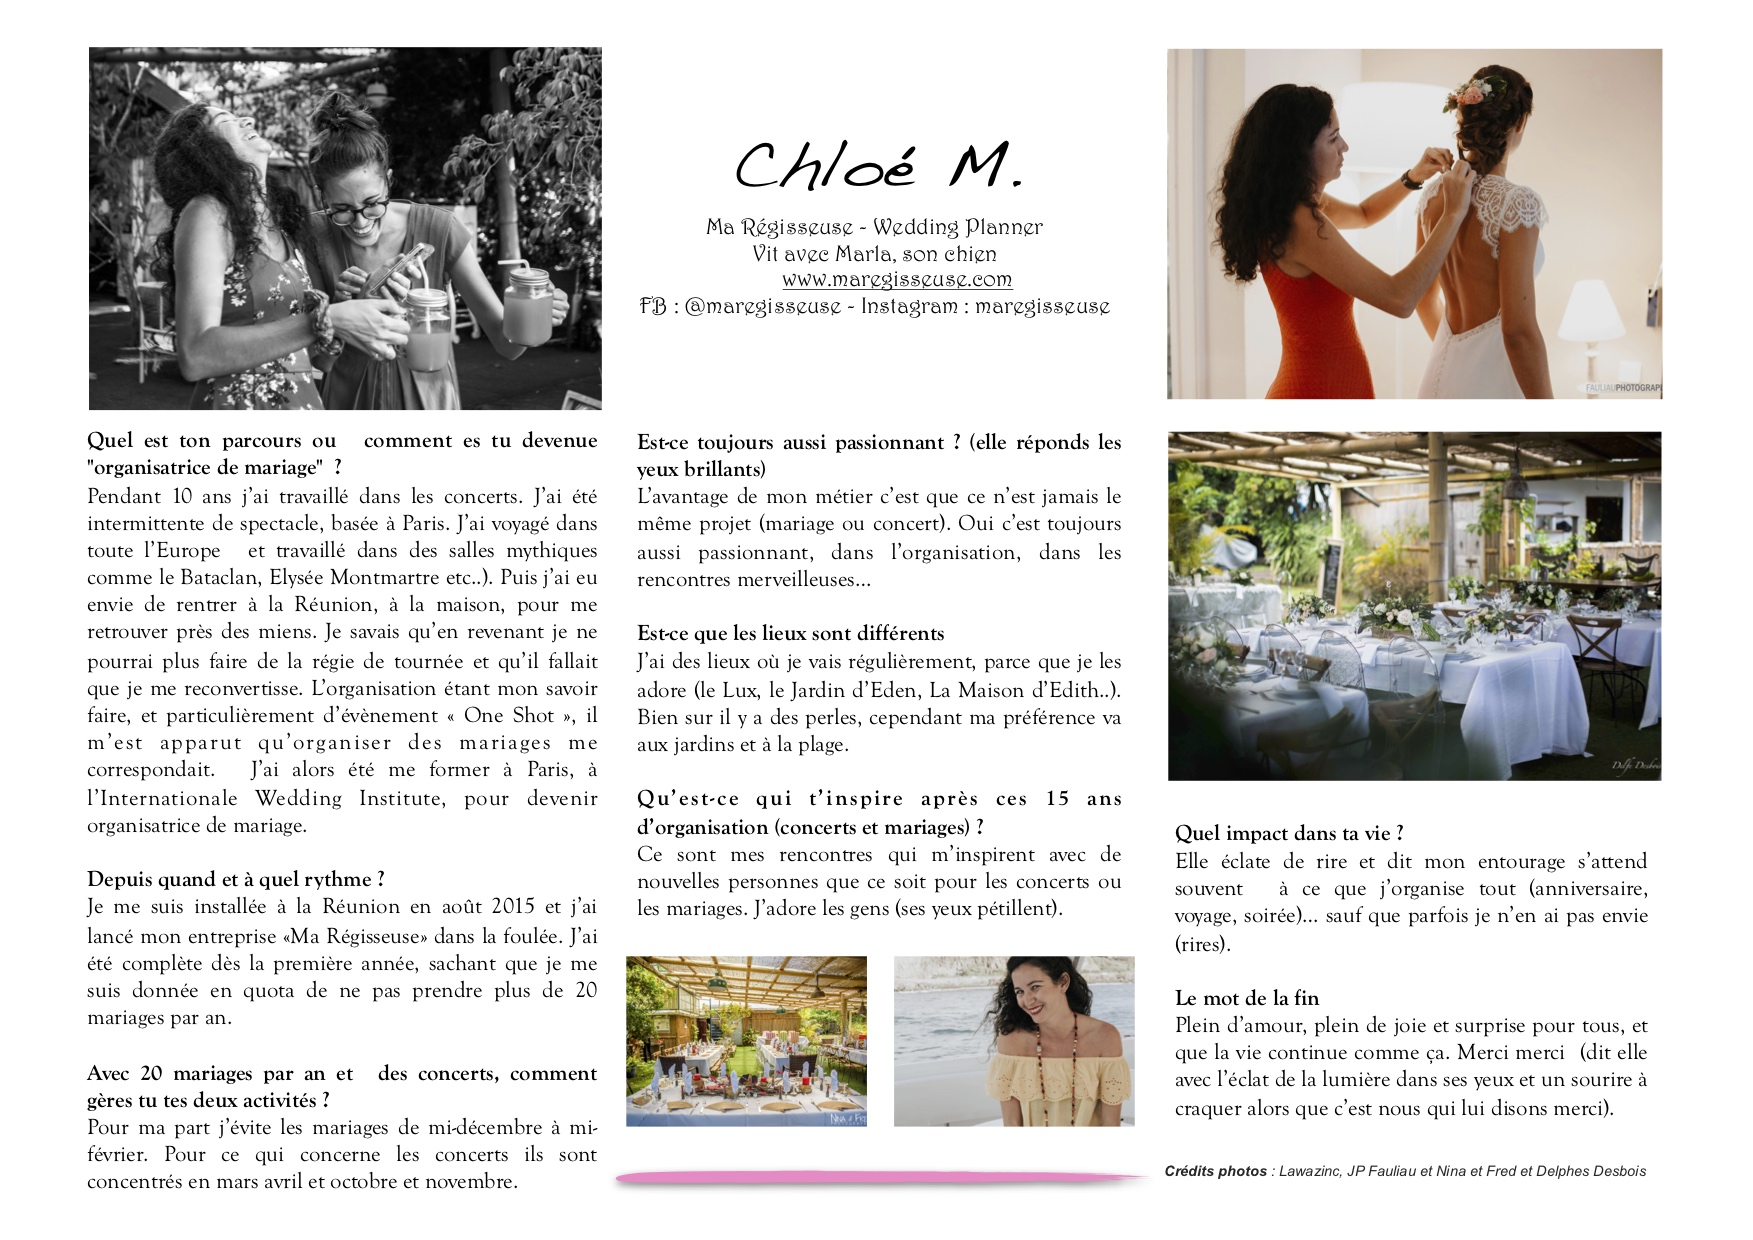 interview wedding planner La Maison d'Edith